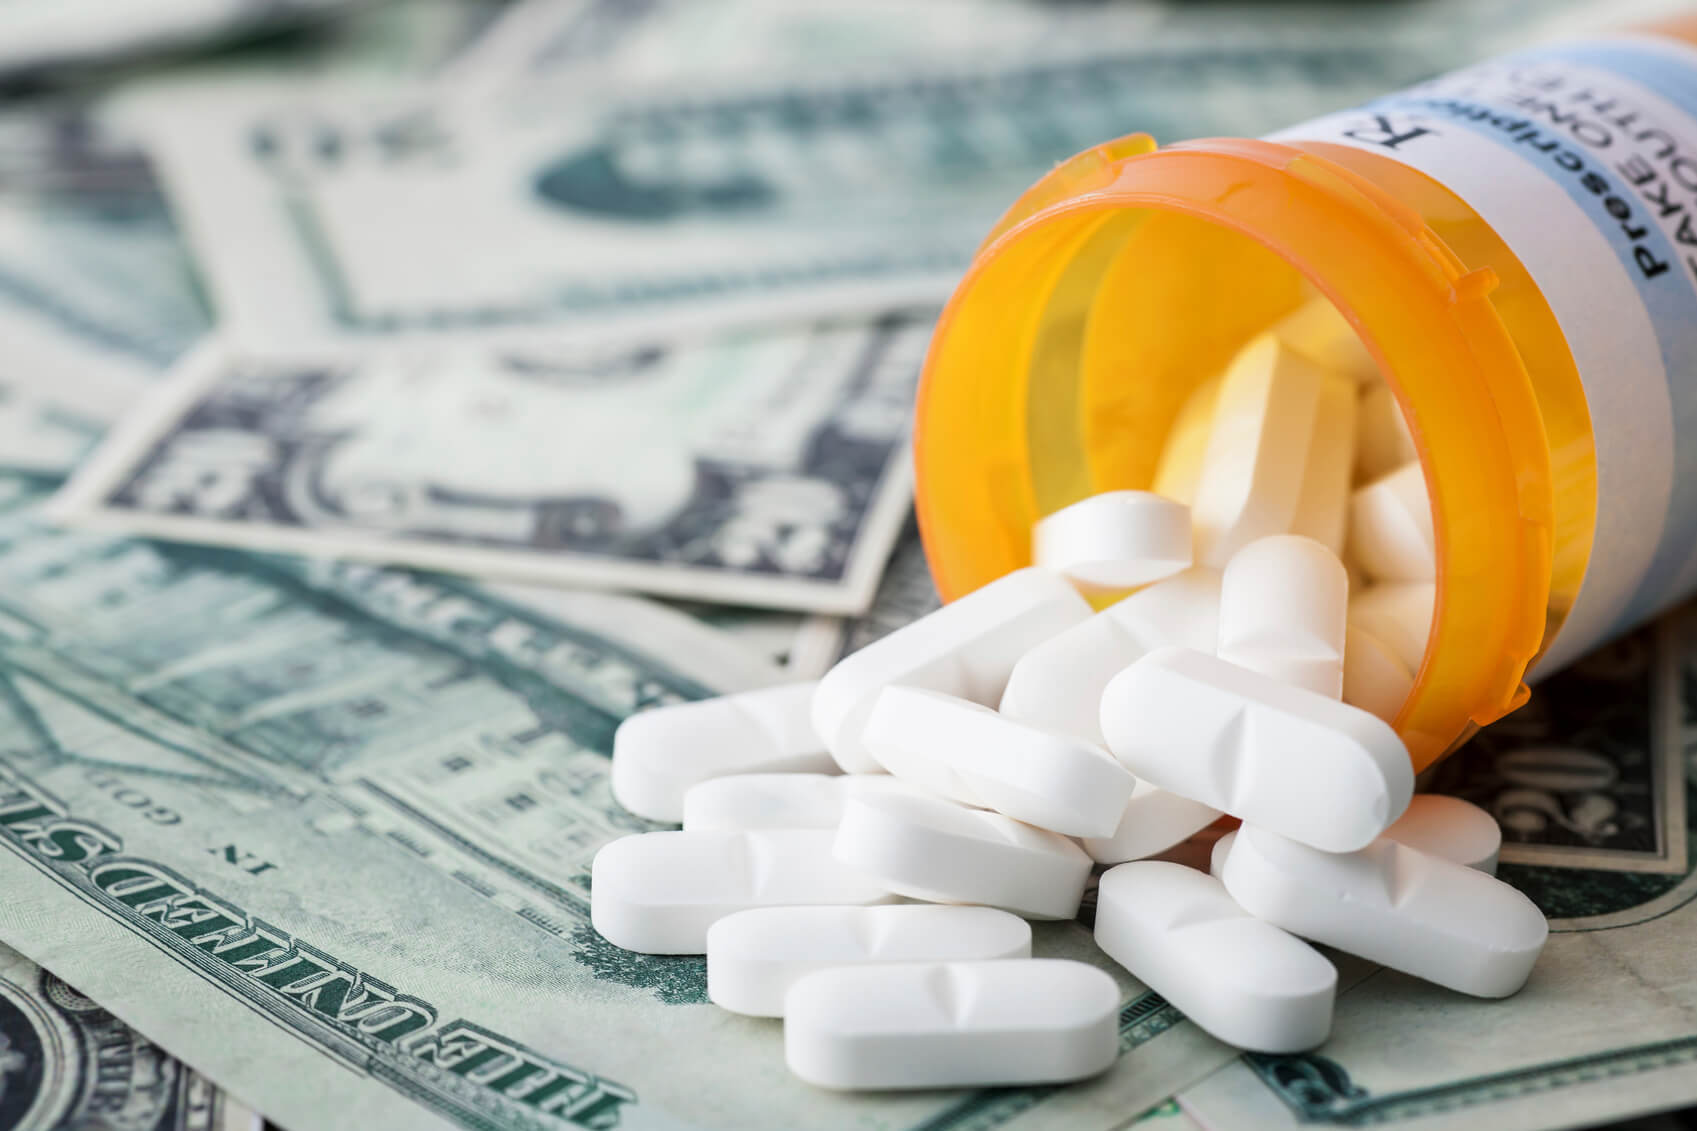 UnitedHealth, OptumRx, class action, lawsuit, medication, costs, keller rohrback, attorneys, seattle, lawyers